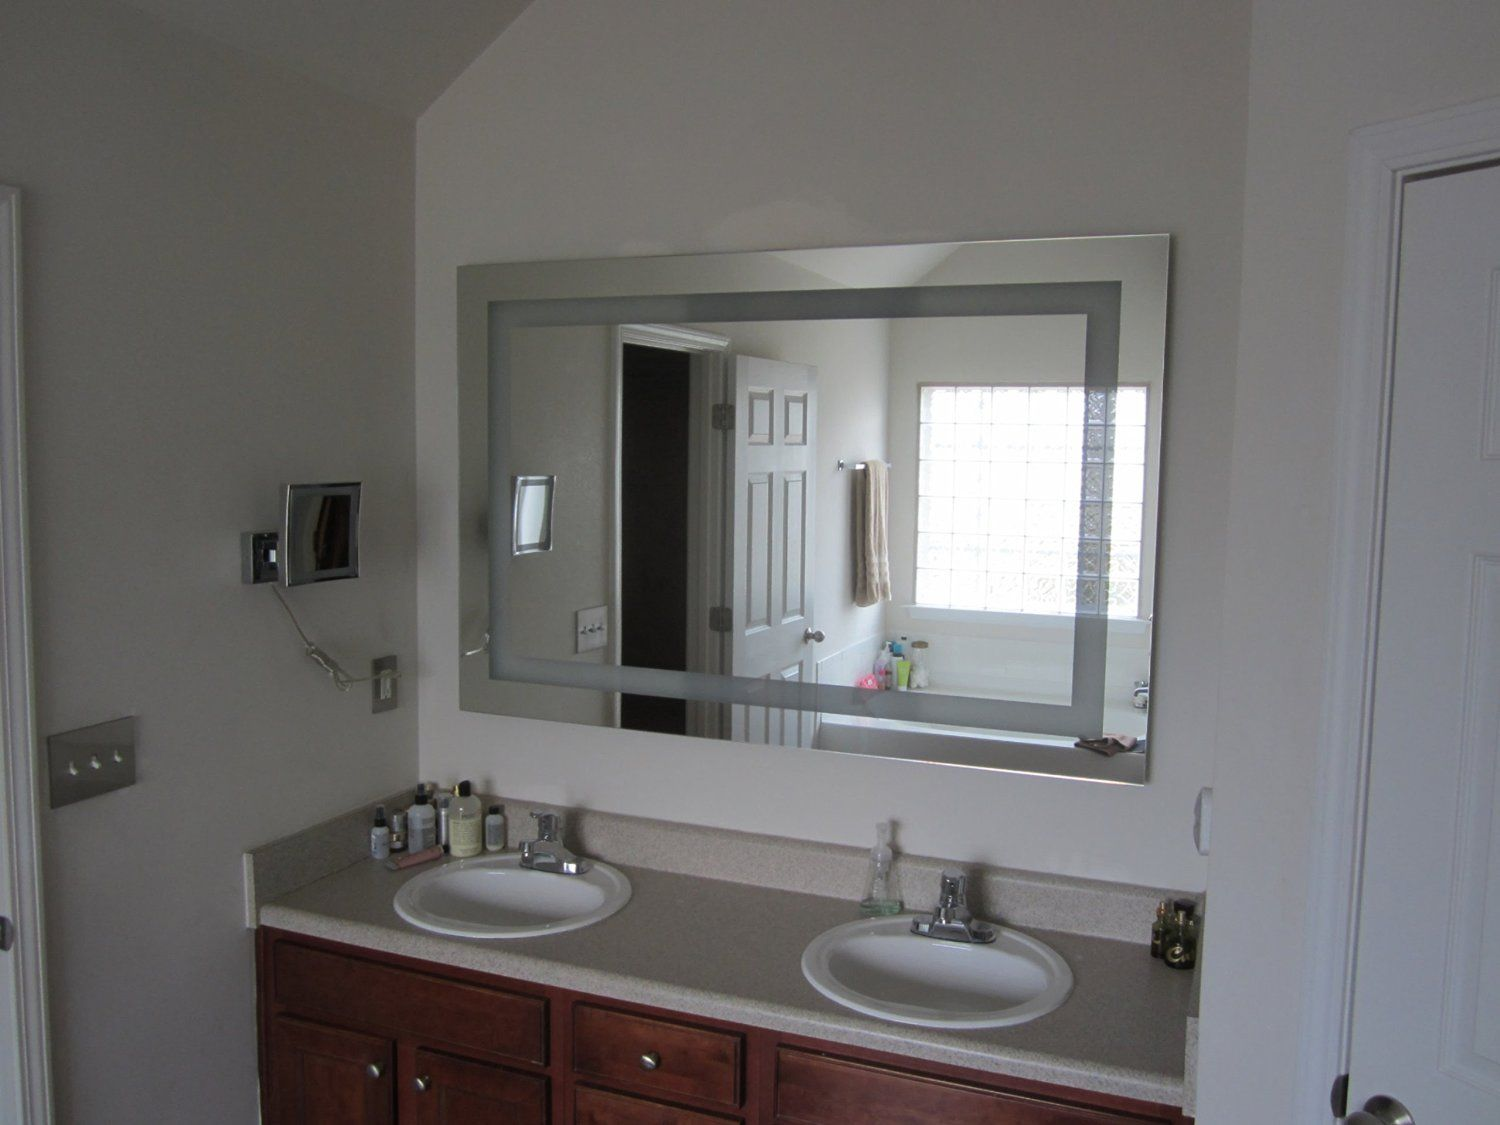 Lighted Vanity Mirror Led Mam86040 Commercial Grade 60 Wide X 40